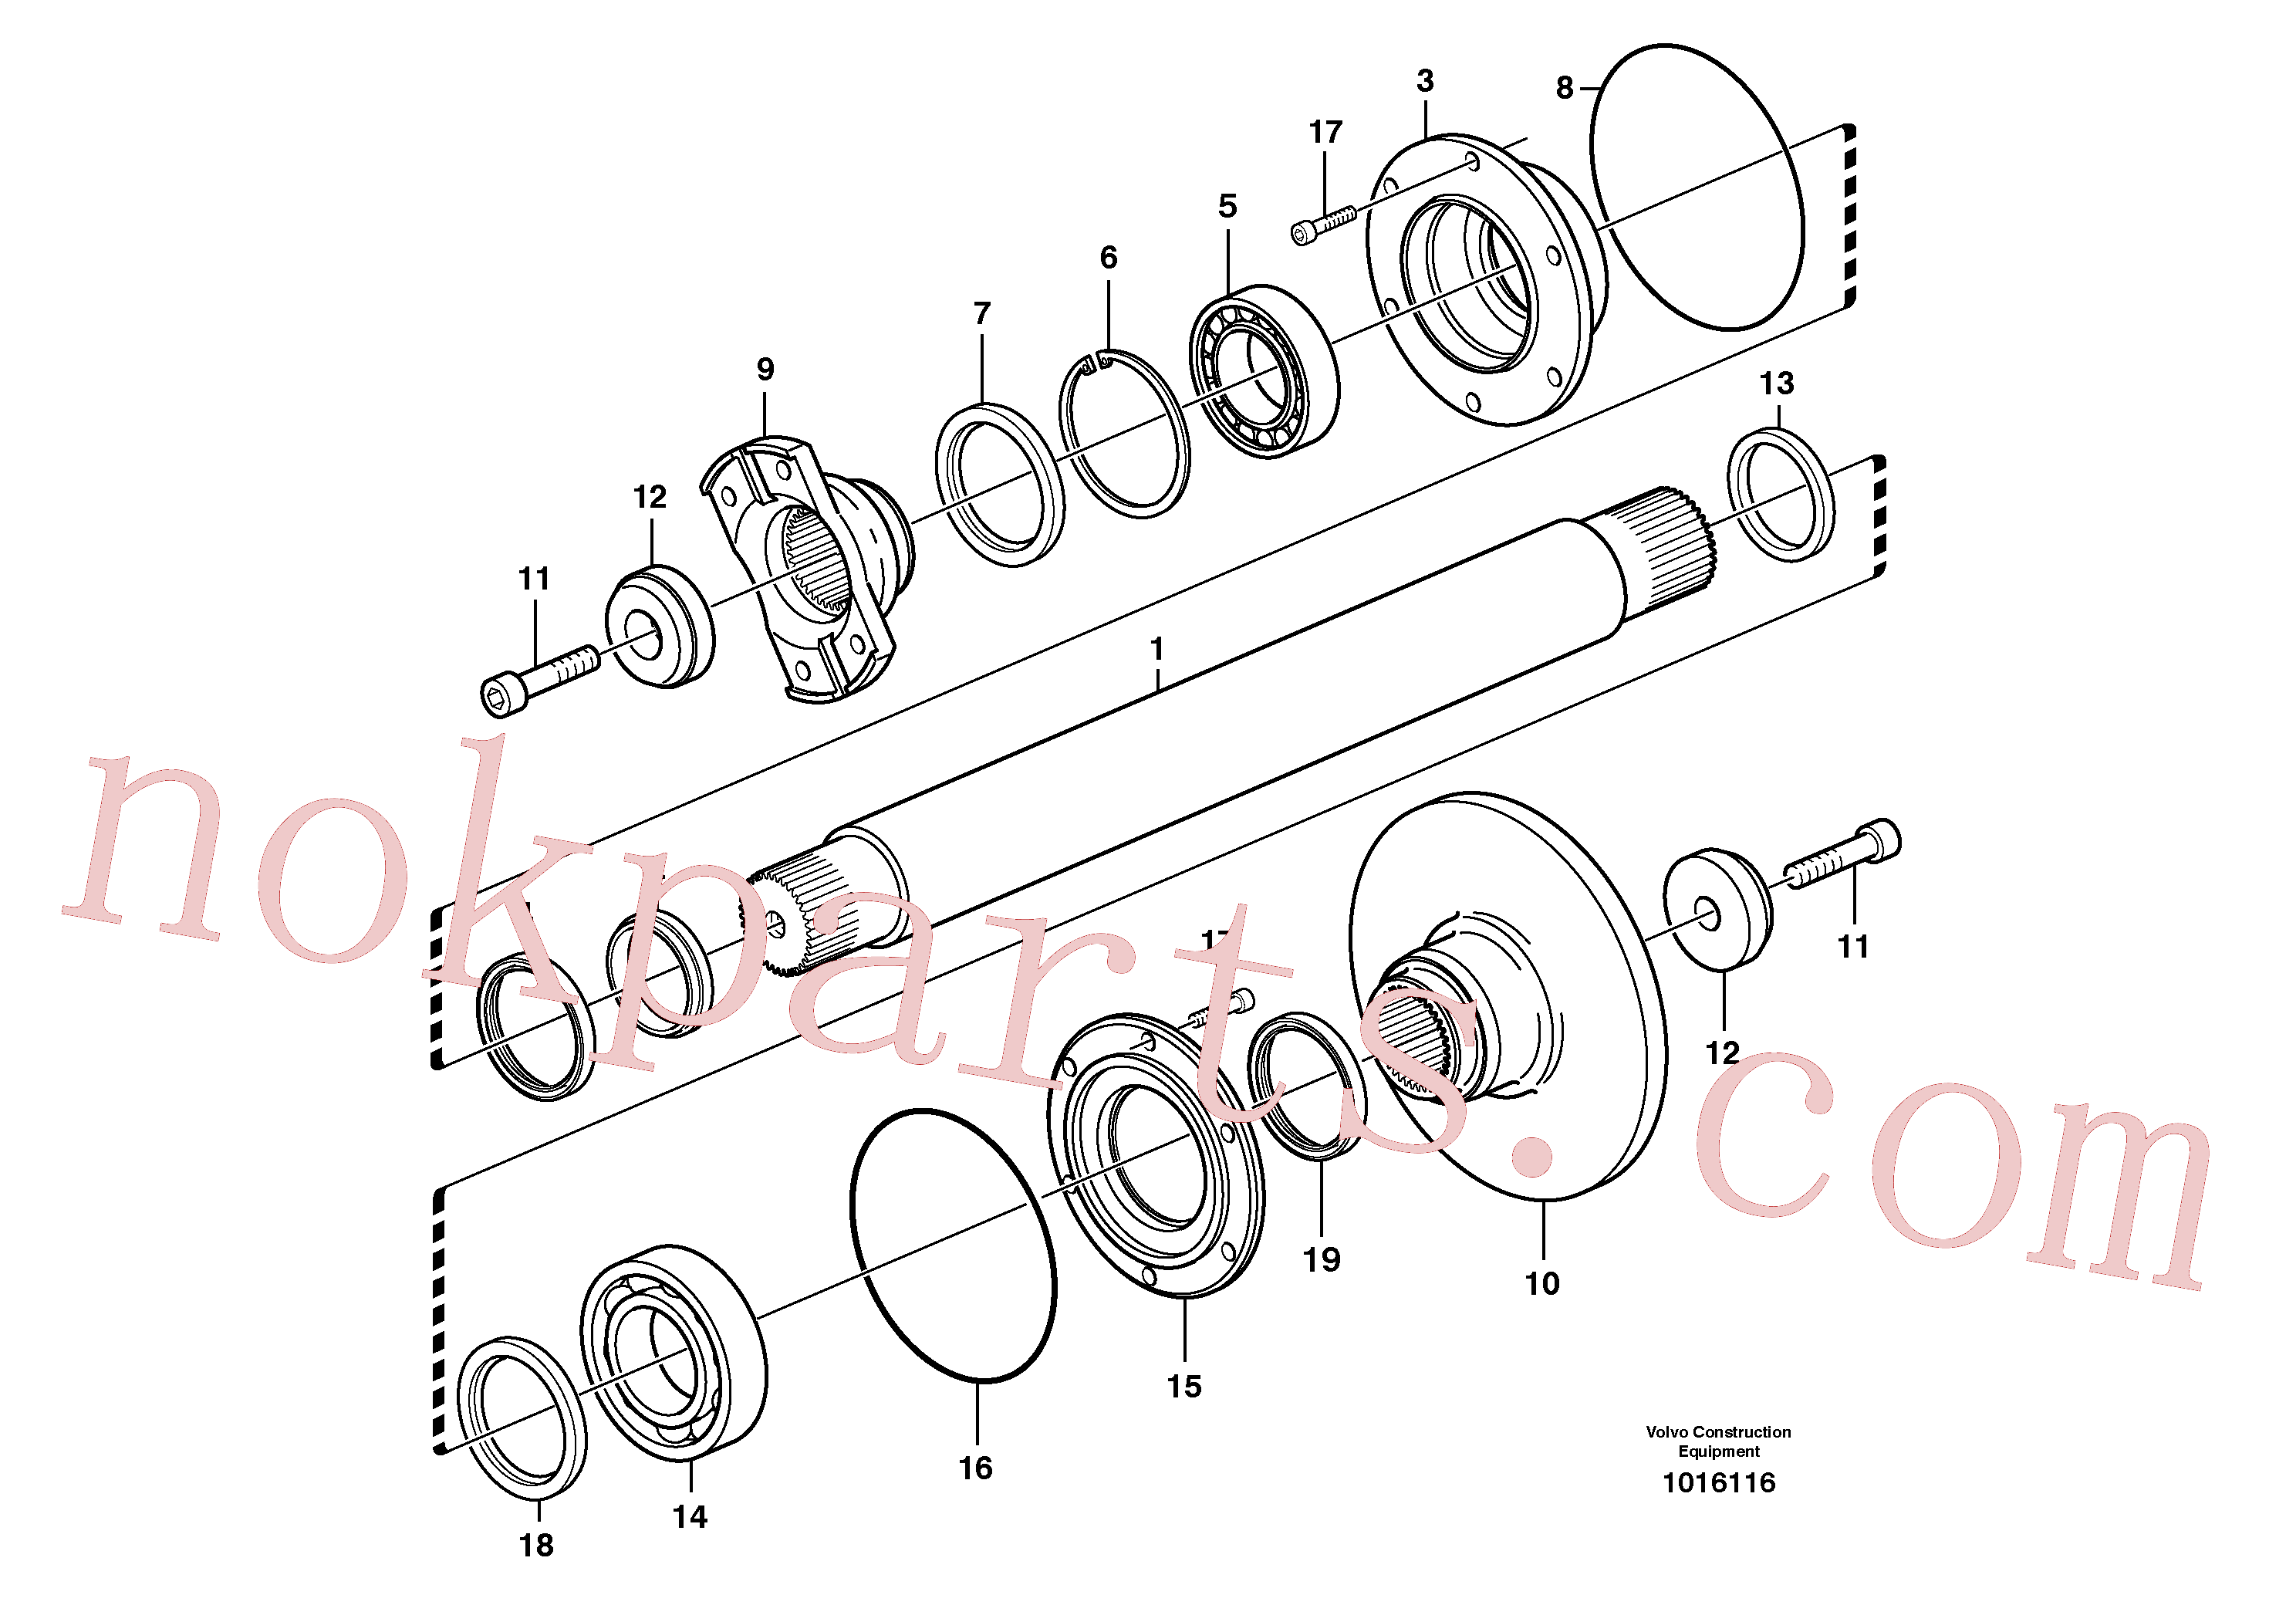 VOE965873 for Volvo Intermediate shaft(1016116 assembly)